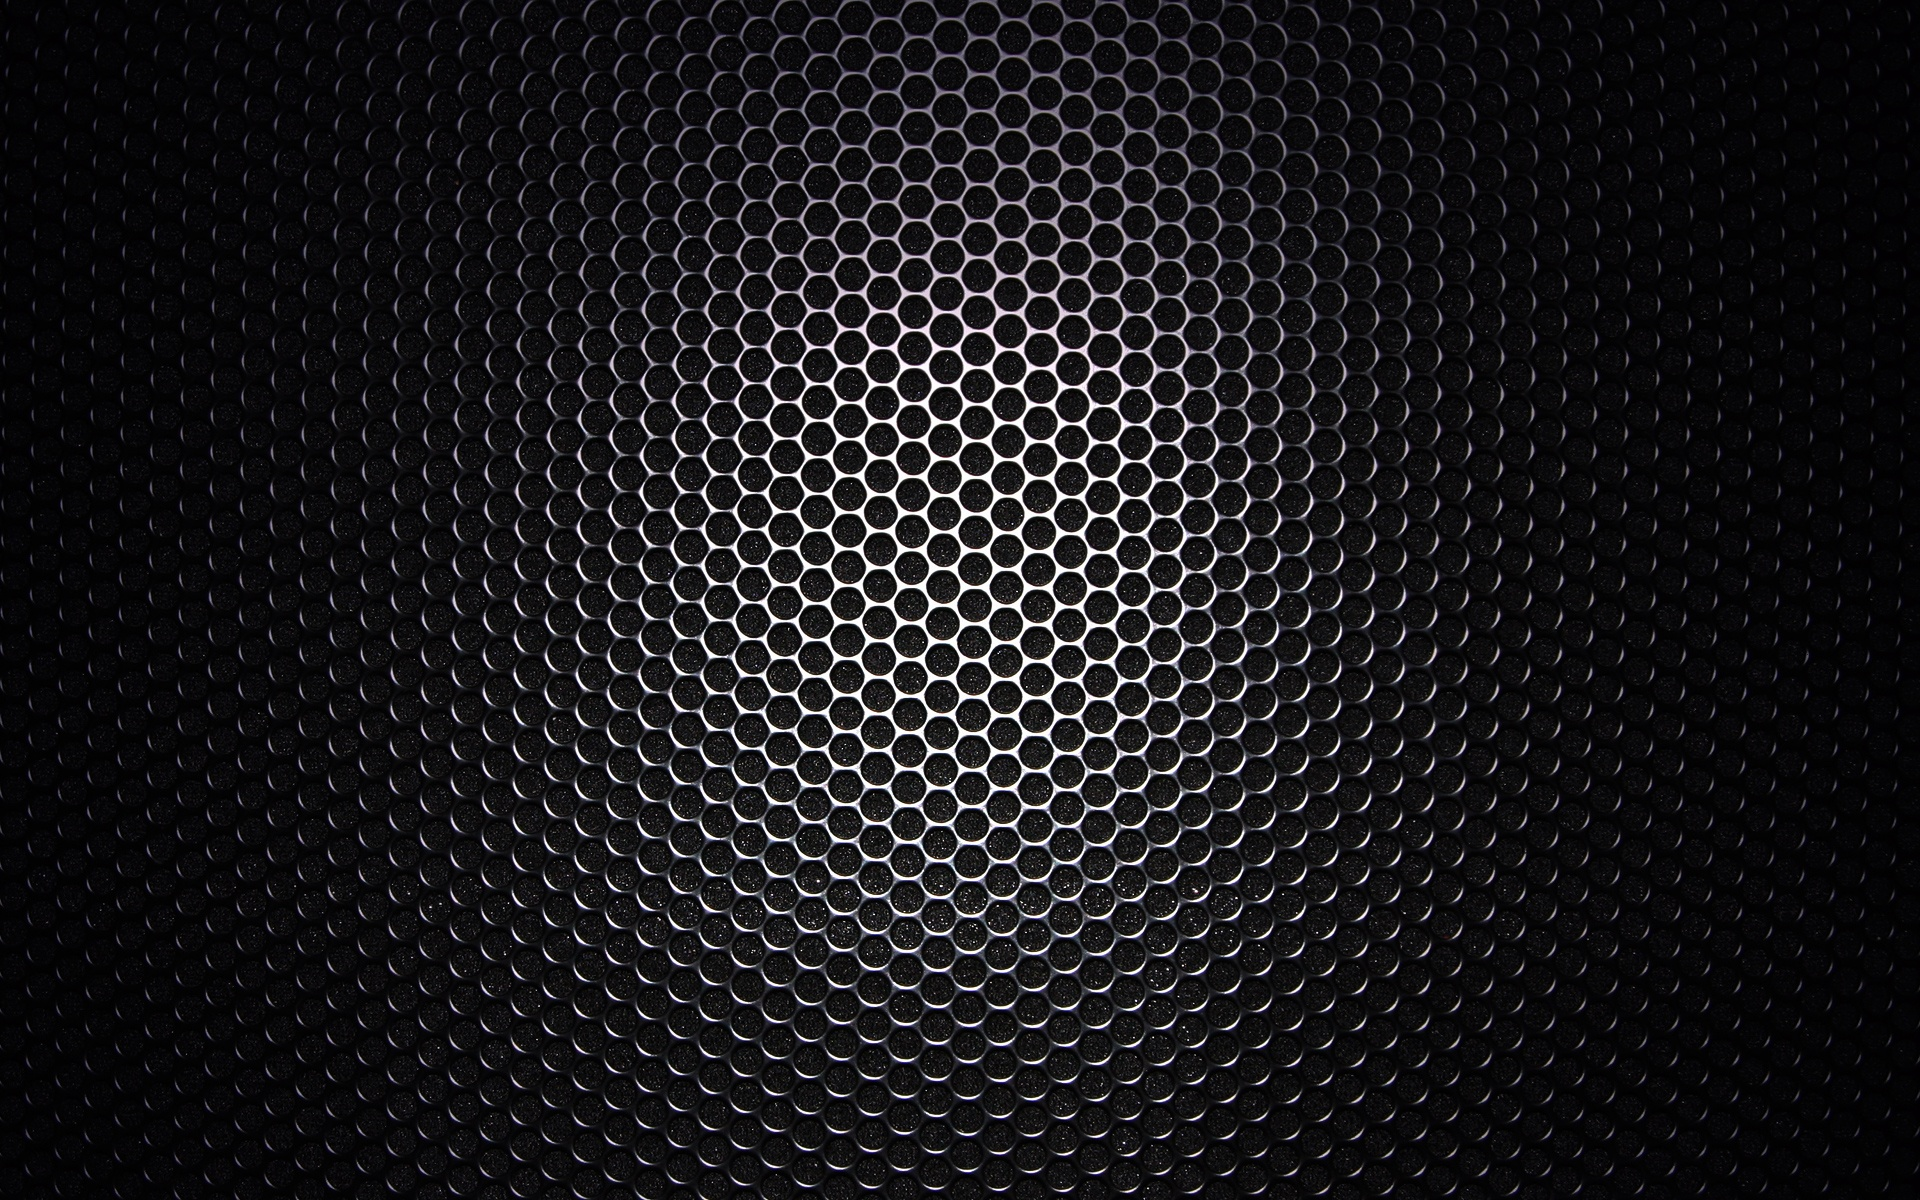 1920x1200 black honeycomb pattern desktop pc and mac wallpaper for Dark pattern background